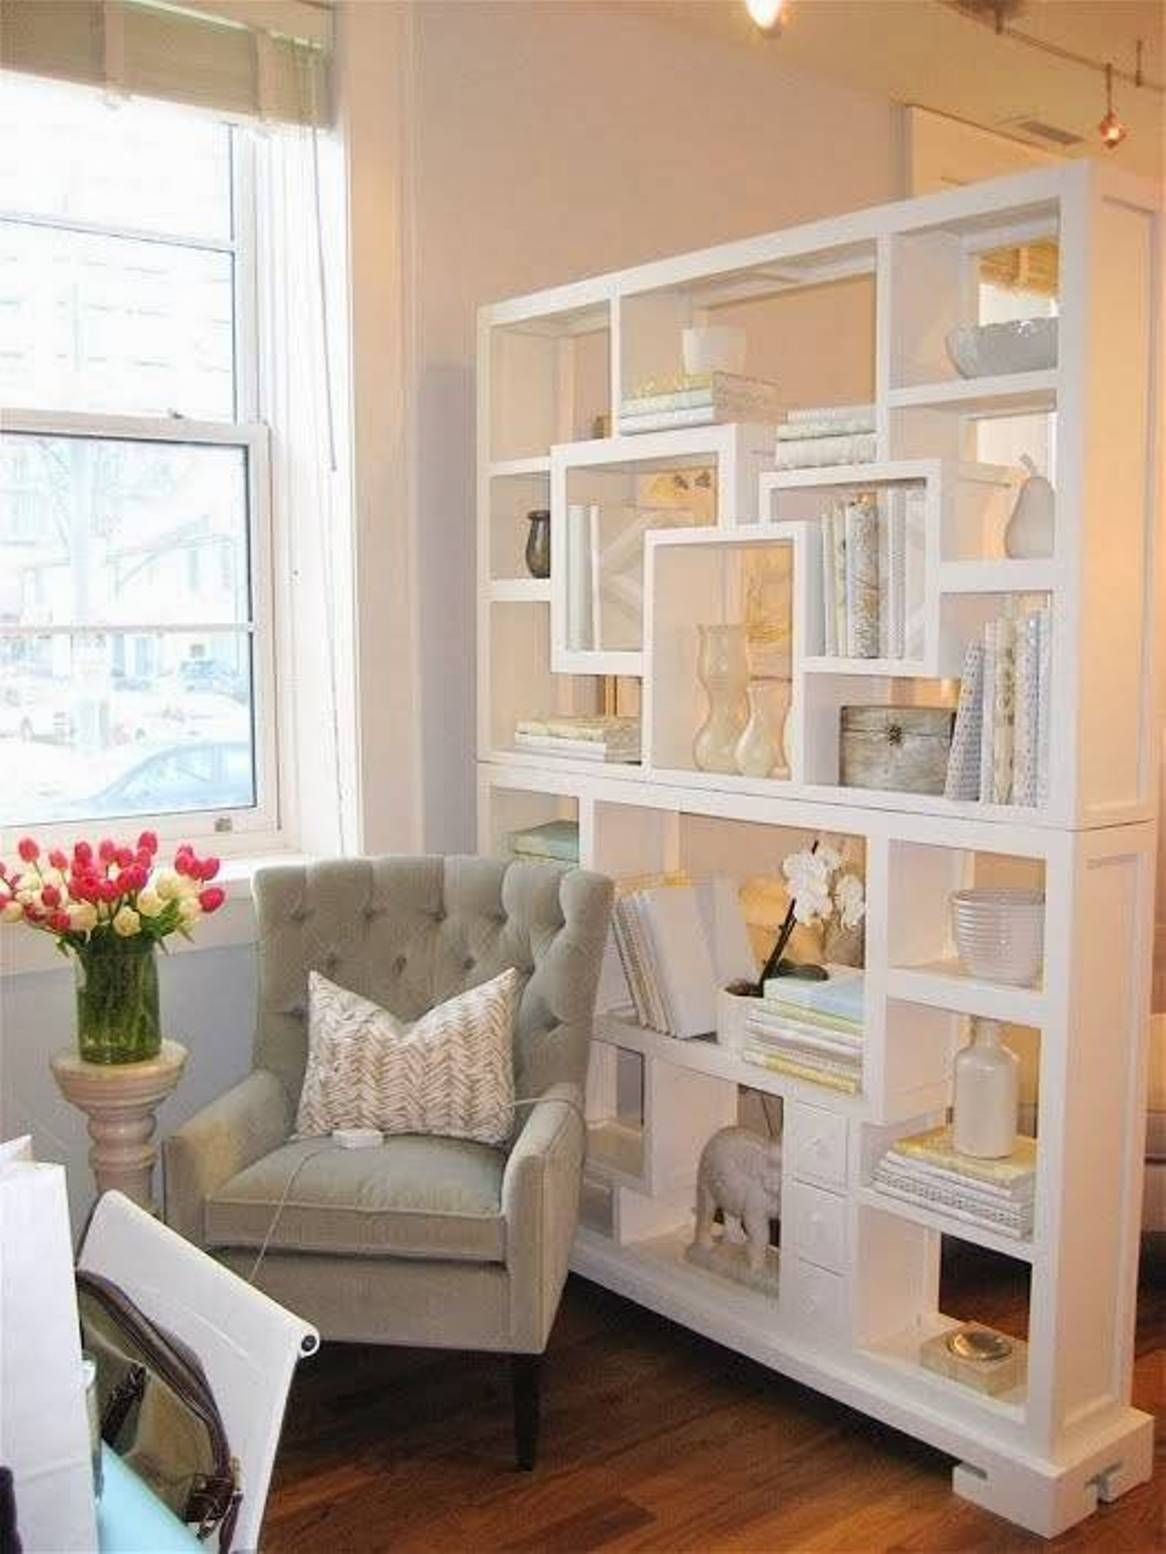 Freestanding Bookcase Living Room Divider Living Room Divider Ideas Living Room Divider Apartment Living Room Home